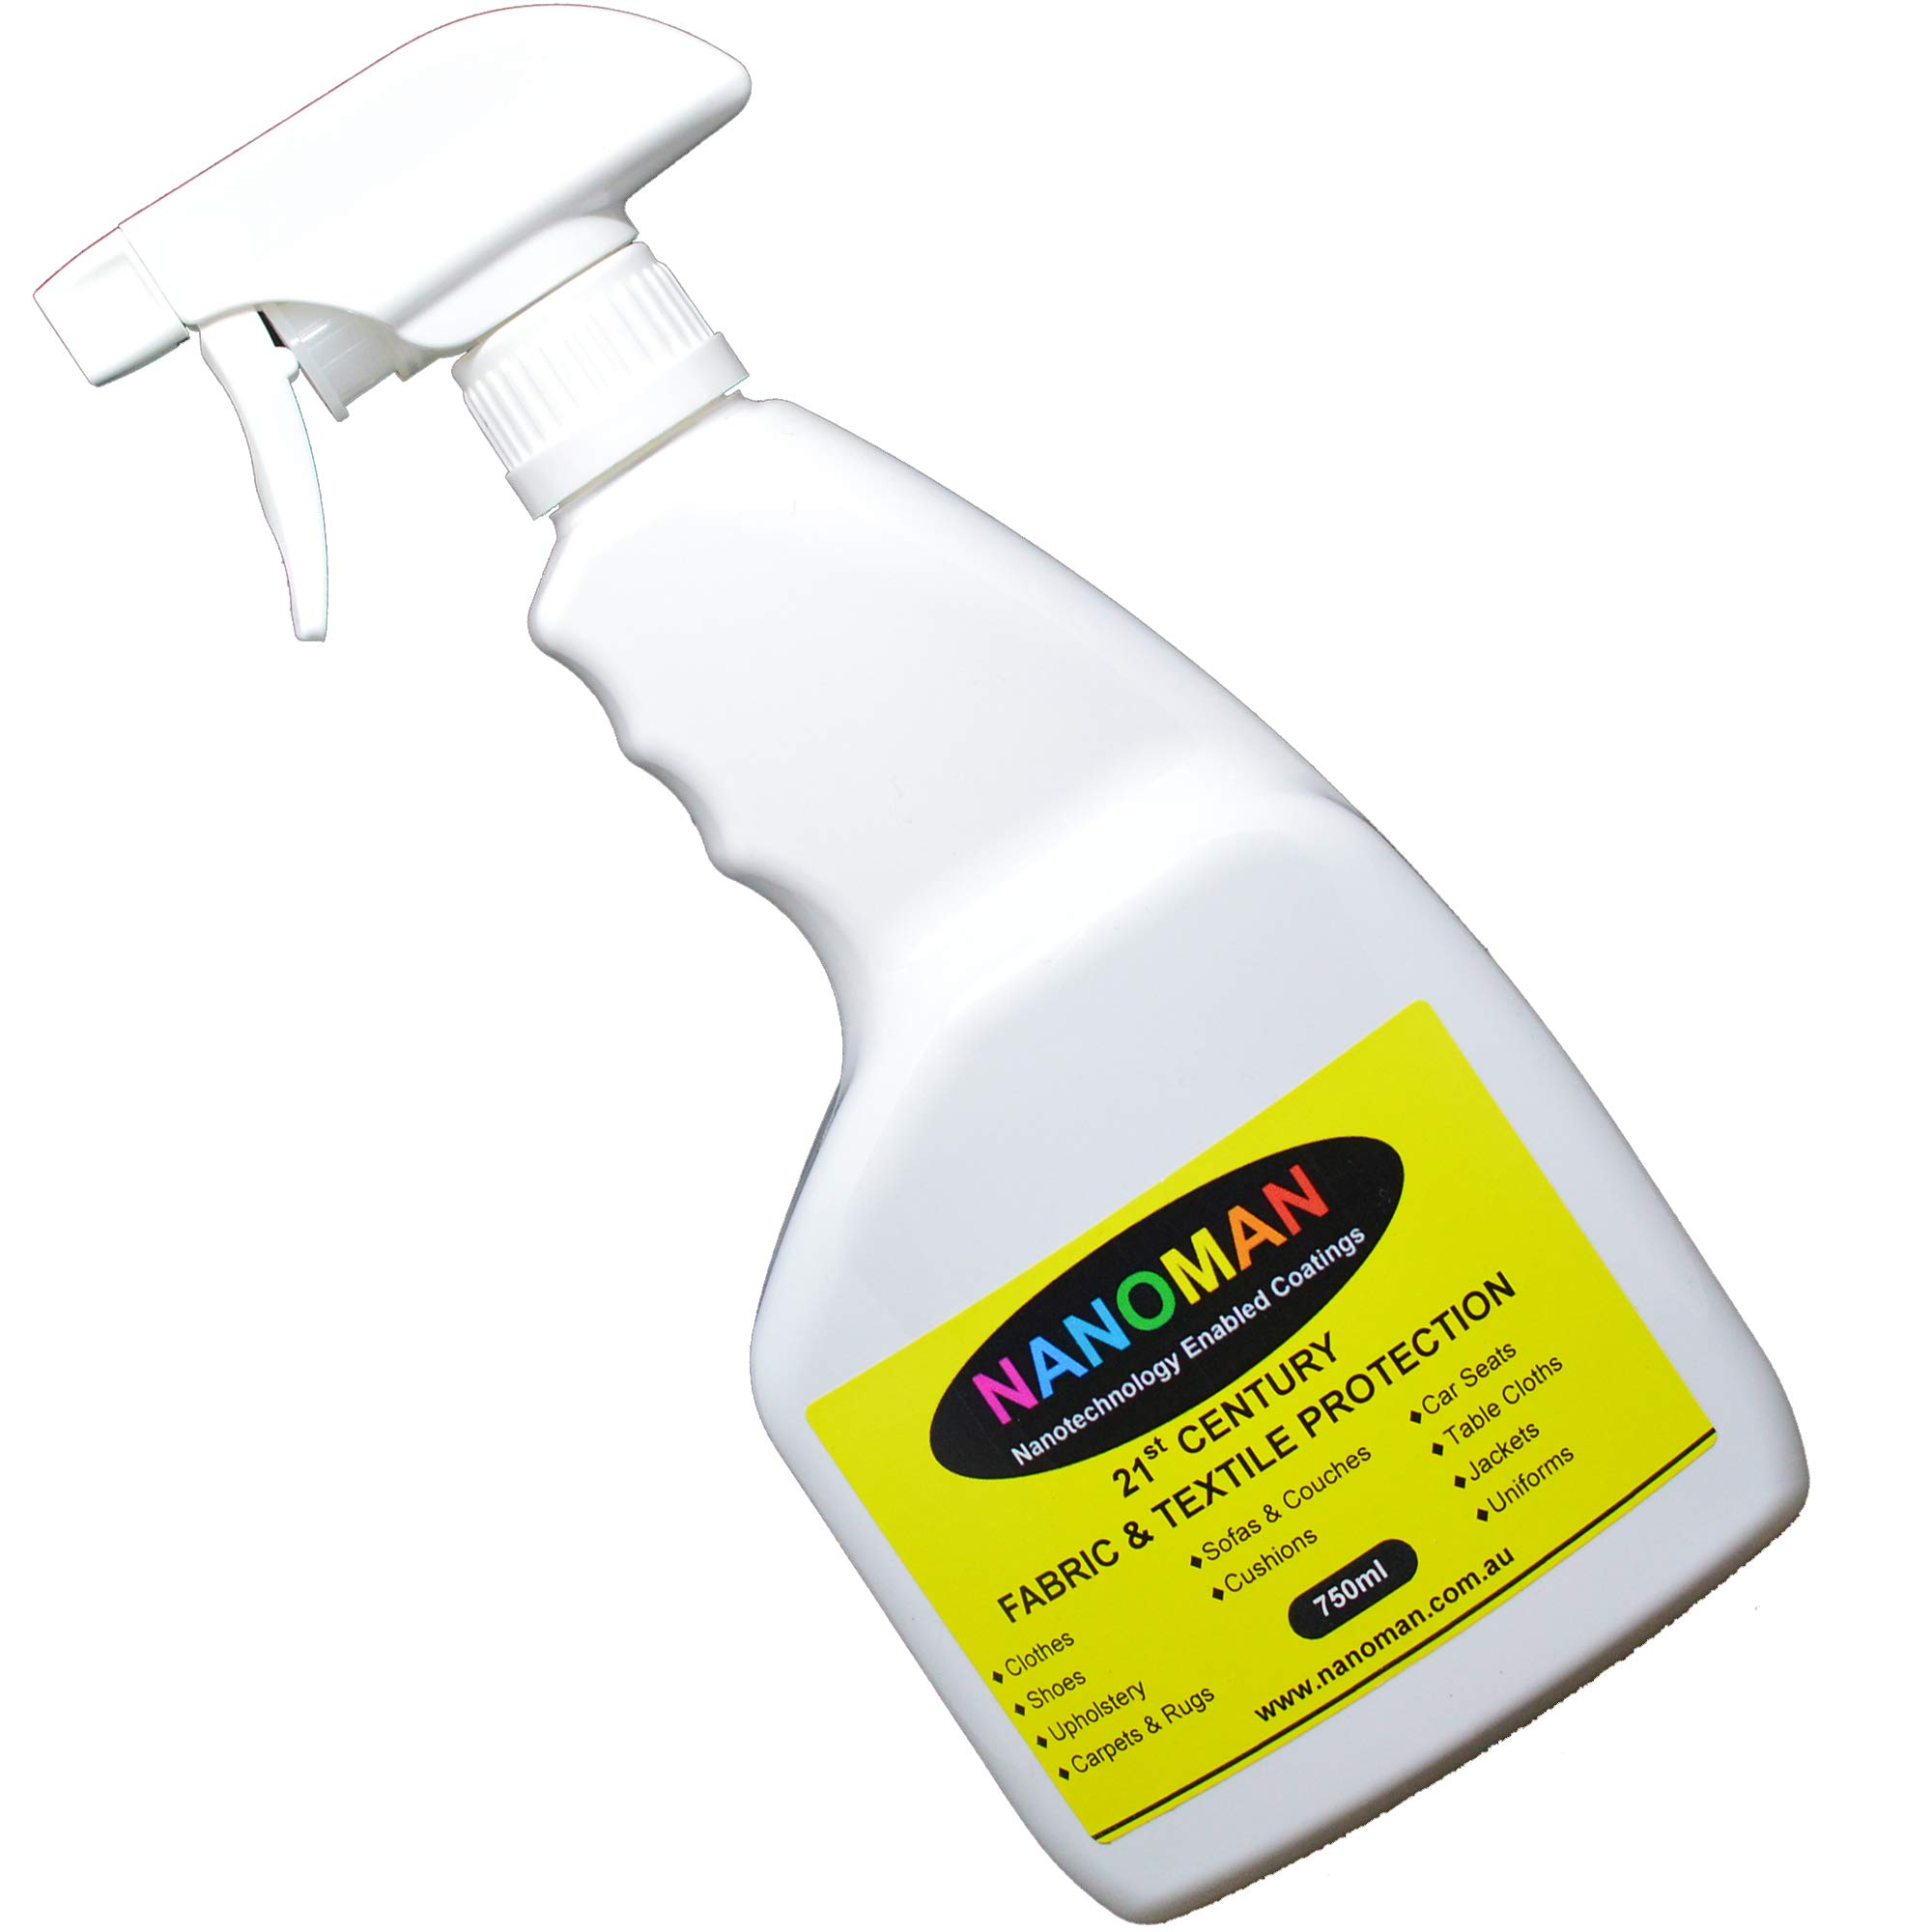 Latest Nano-Technology Fabric, Carpet, Upholstery Spray Protector Guard (25.4 ounce). Home, Car and Boat. Water and Stain Repellent Protection Coating.